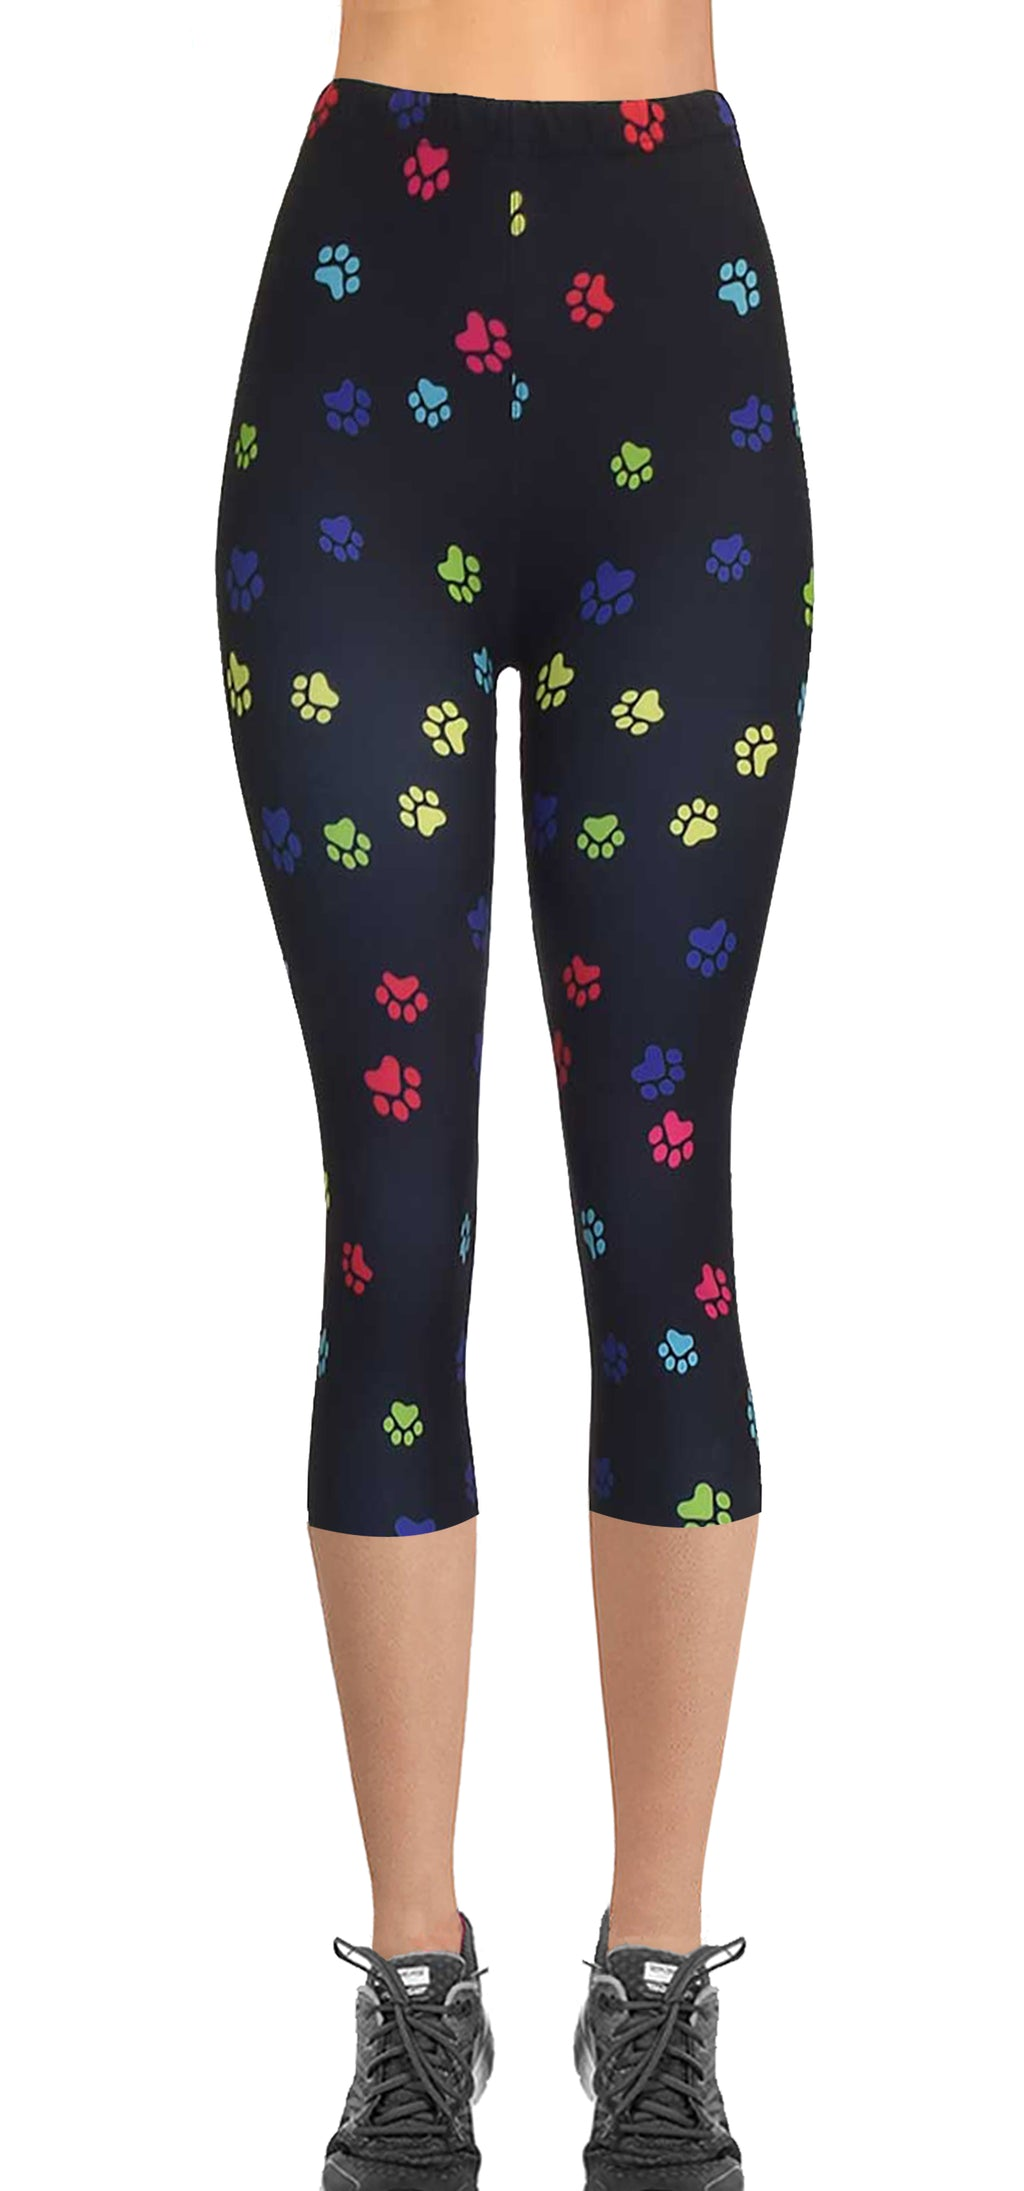 Printed Capris Leggings - Paws